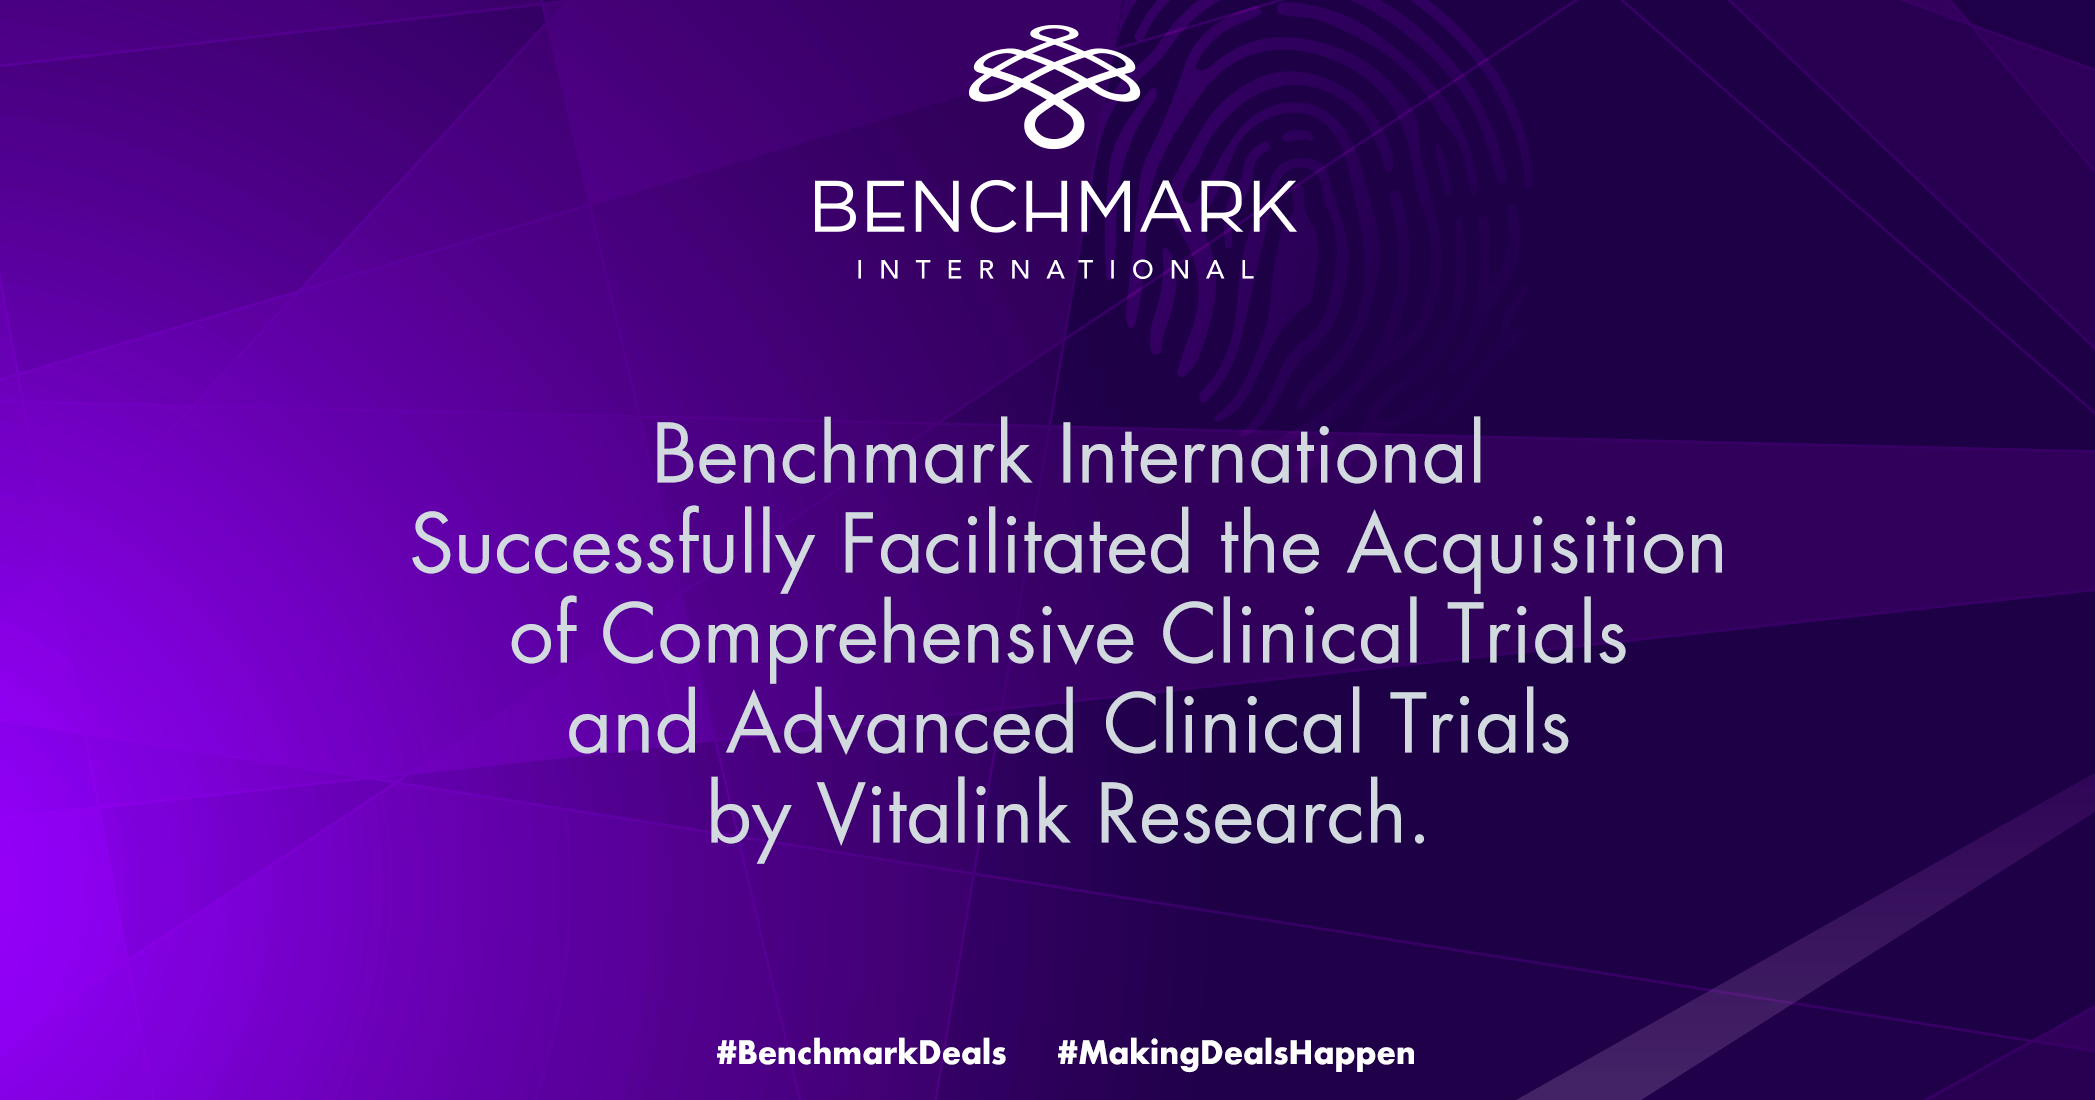 Benchmark International Successfully Facilitated the Acquisition of Comprehensive Clinical Trials and Advanced Clinical Trials by Vitalink Research